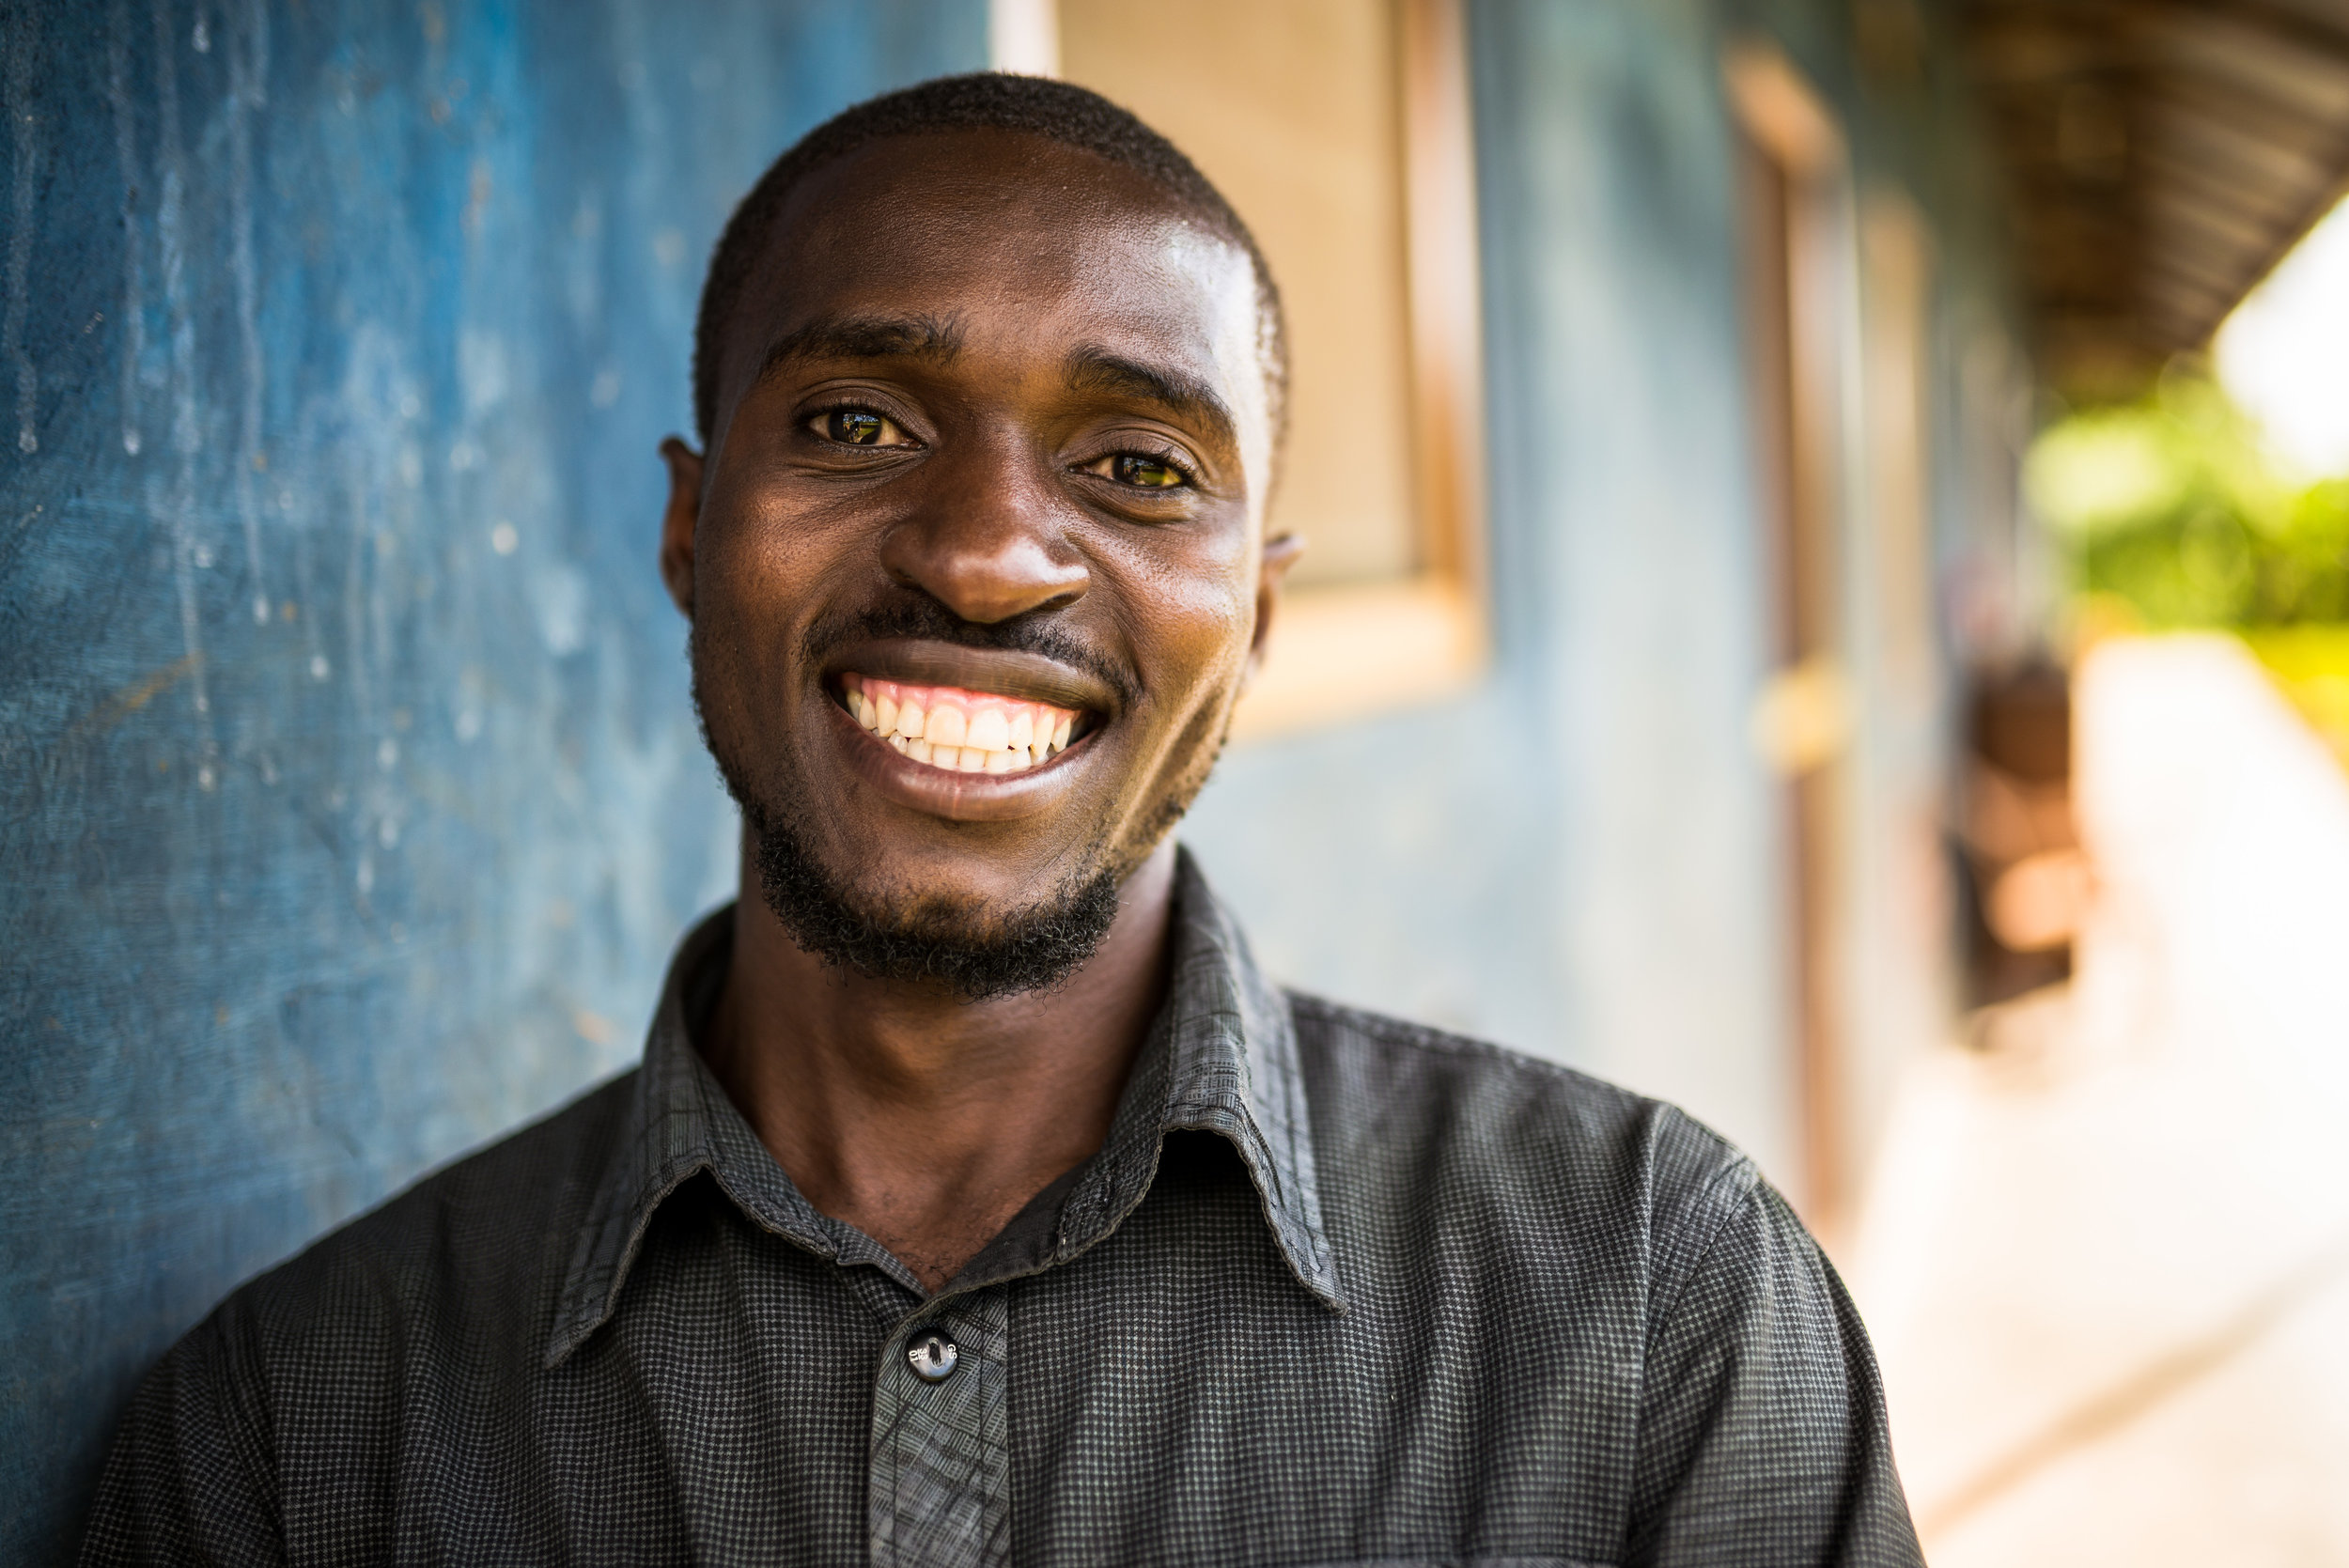 Moses Ssekabira, born and raised in Uganda, grew up walking to unclean water sources to collect water for his family. He thanks God for how his family's quality of life has improved.